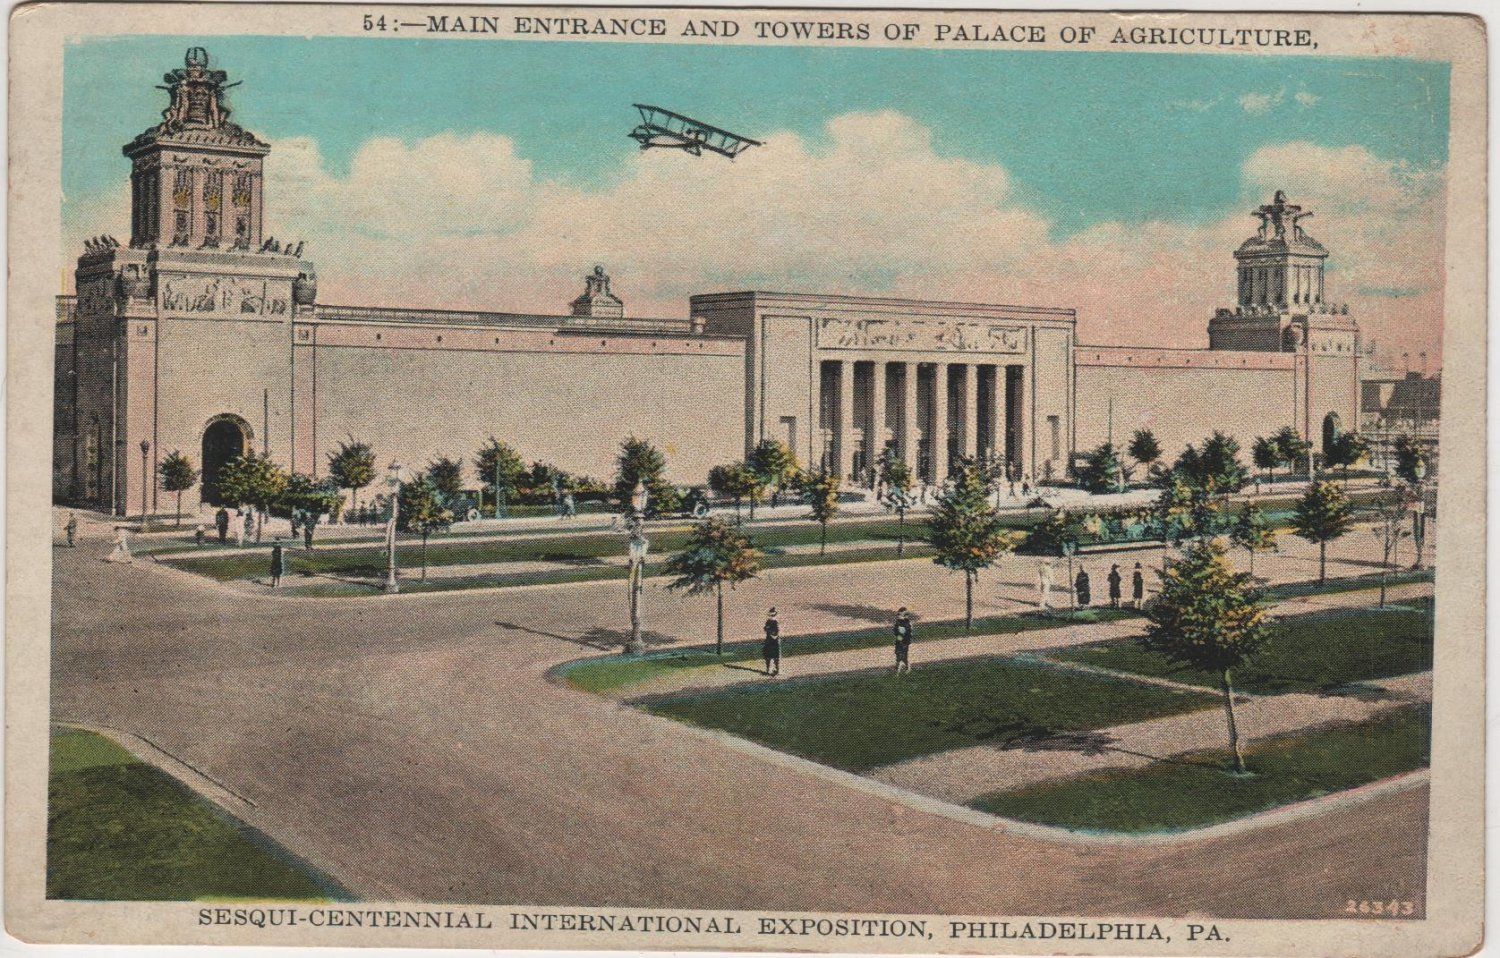 Philadelphia Pennsylvania Postcard, Main Entrance & Towers of Palace of Agriculture c.1926